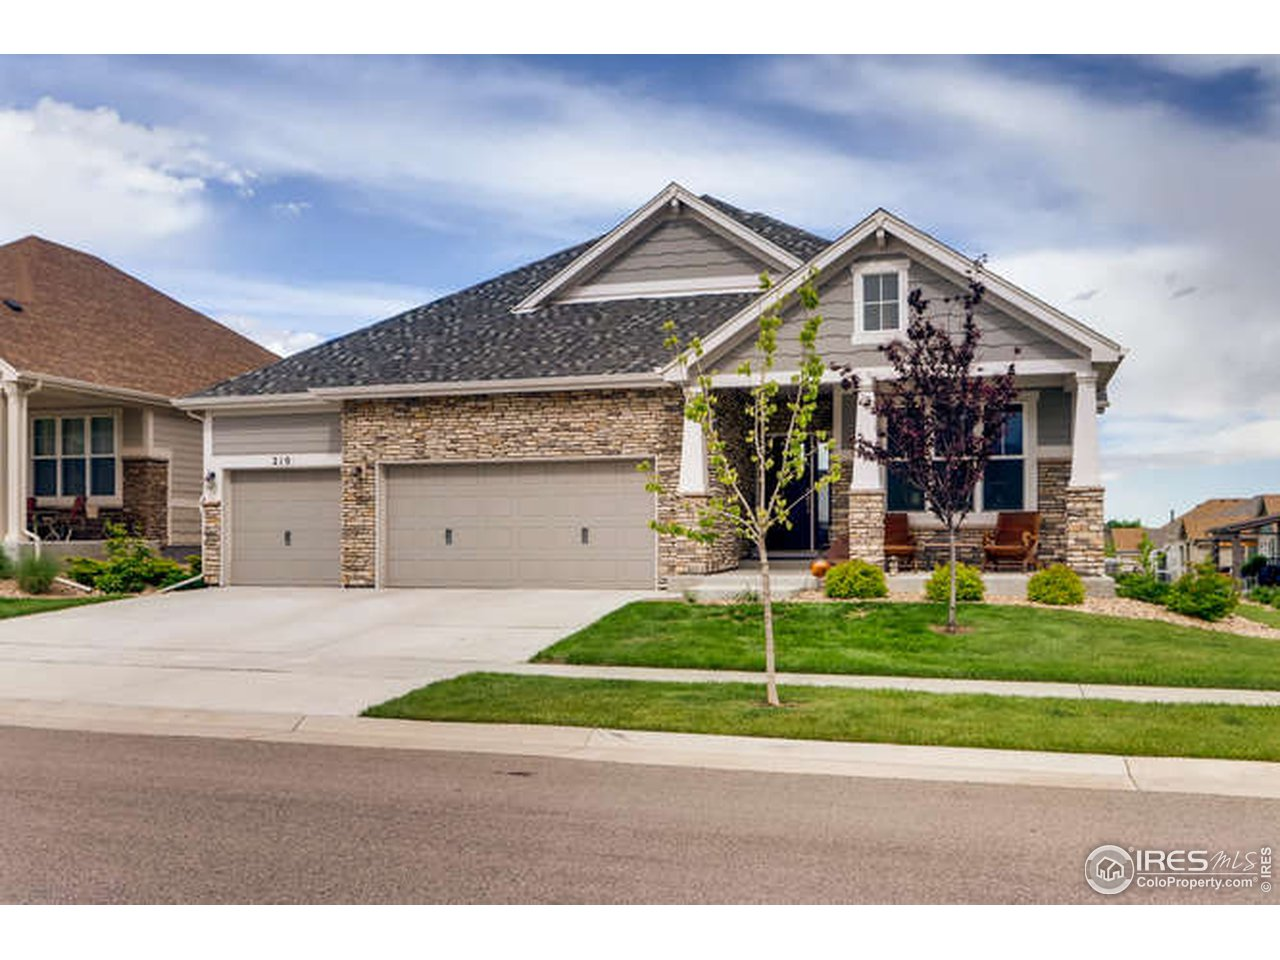 210 8th Ave, Superior CO 80027